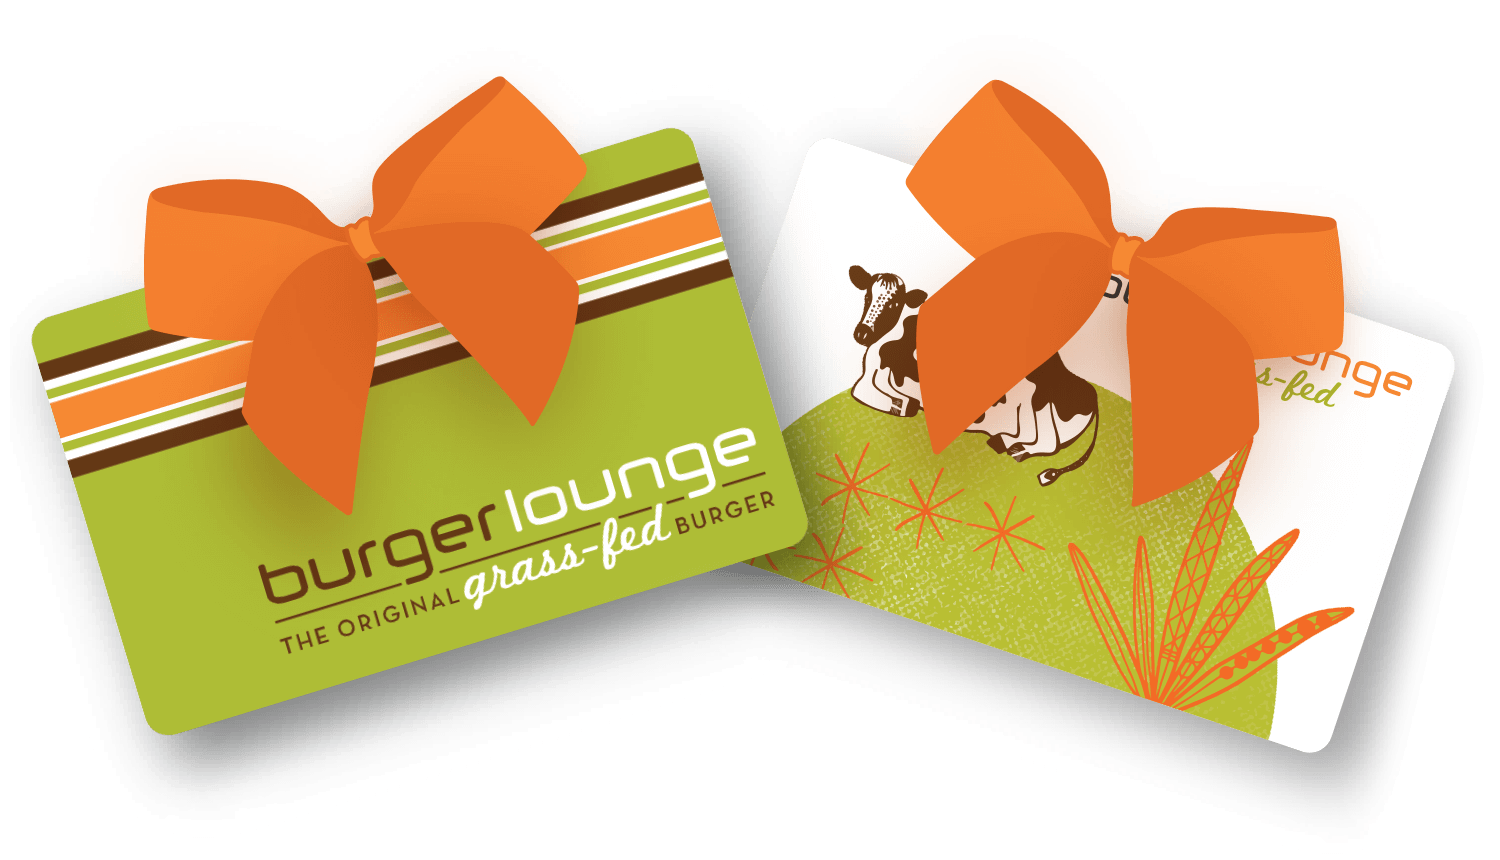 Burger Lounge Gift Cards, Available Online and at all Burger Lounge locations